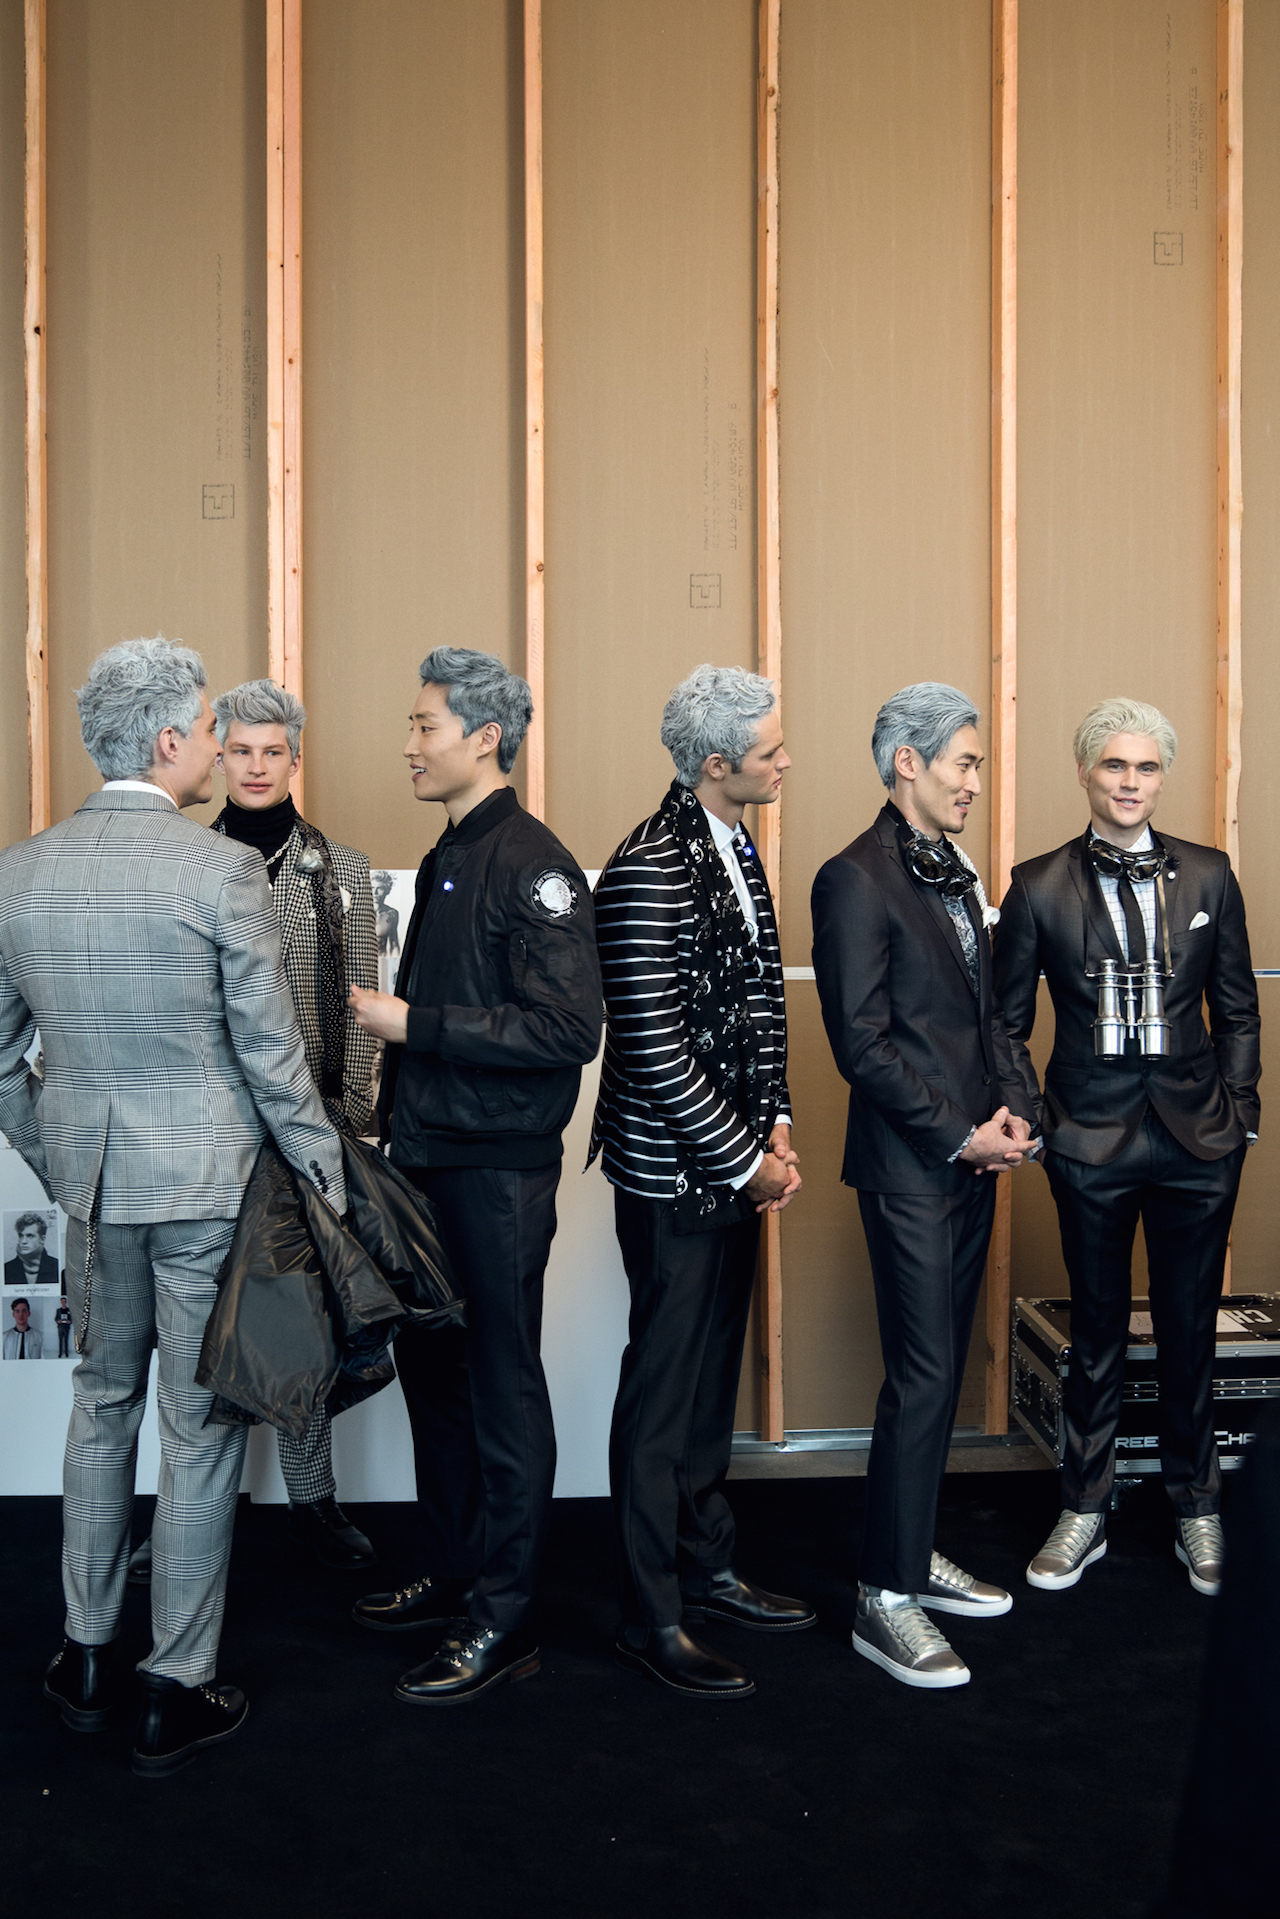 Silver-haired models hanging backstage before walking out onto Nick Graham's space-themed runway. Shot with my Sony A7RII w/ Sony 24-70 2.8 G Master |    ISO 500 | 1/125s | f/2.8